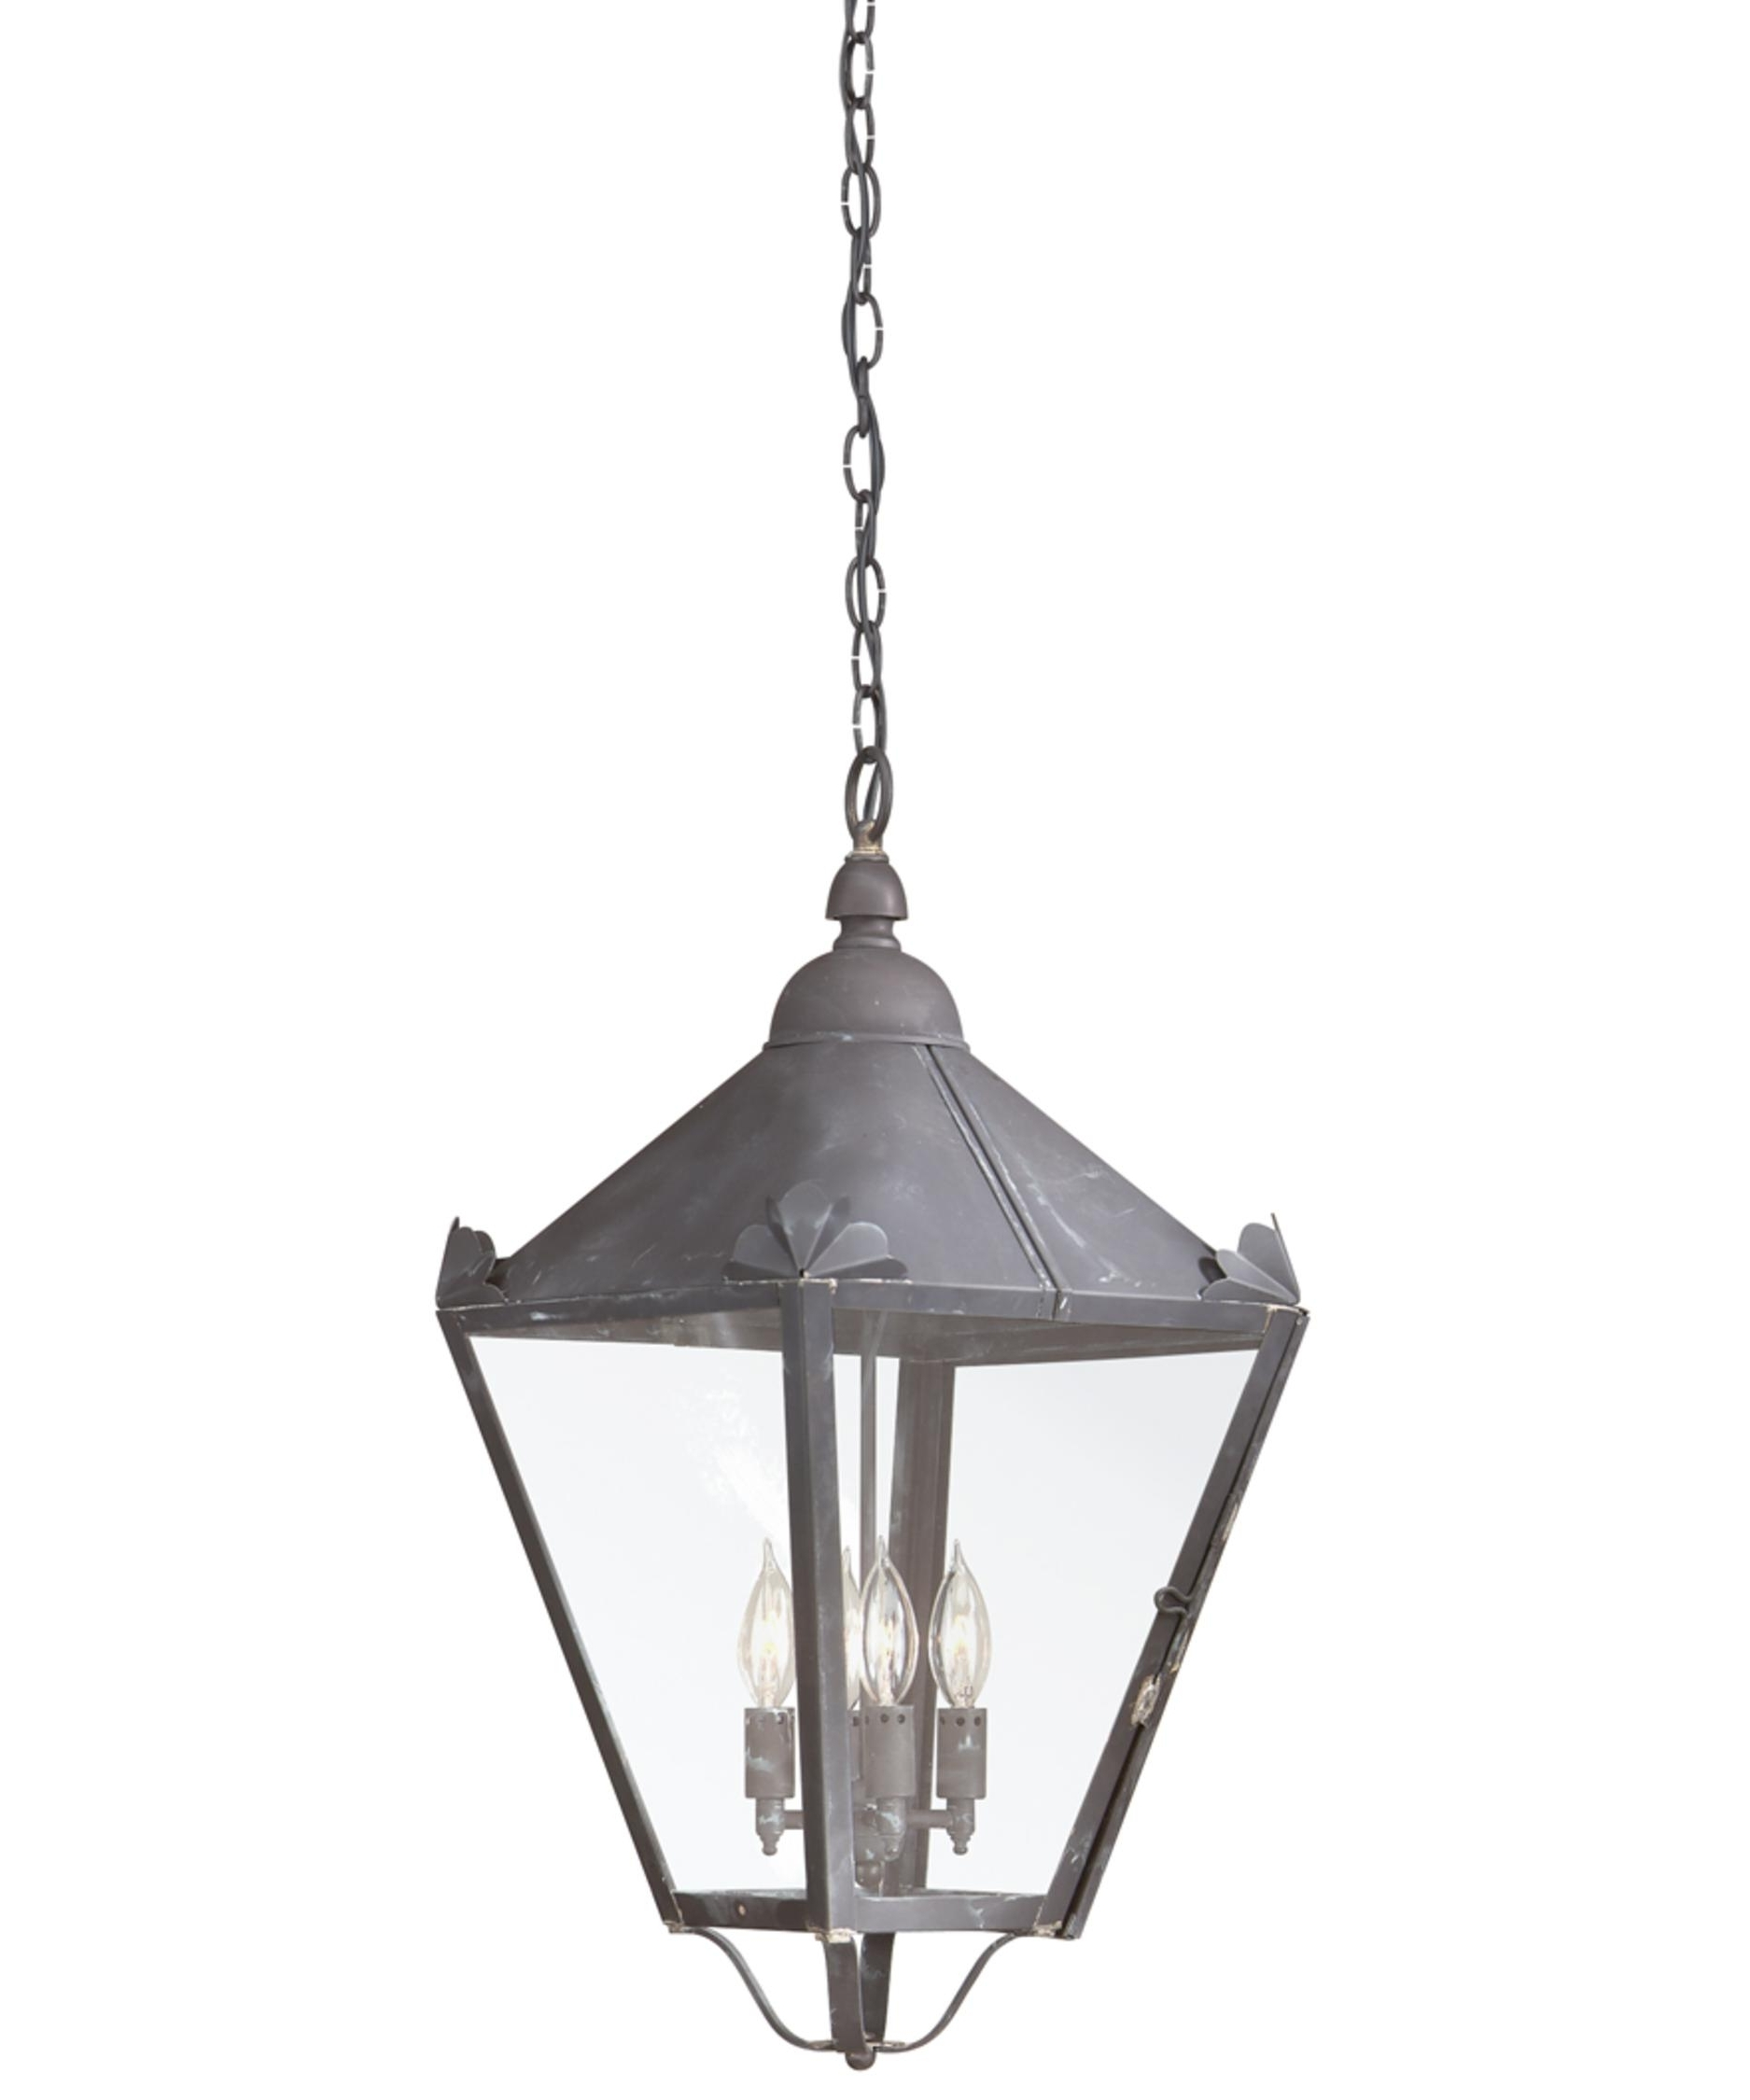 2019 Troy Lighting F8948 Preston 13 Inch Wide 4 Light Outdoor Hanging Intended For Hanging Outdoor Light On Rod (View 1 of 20)